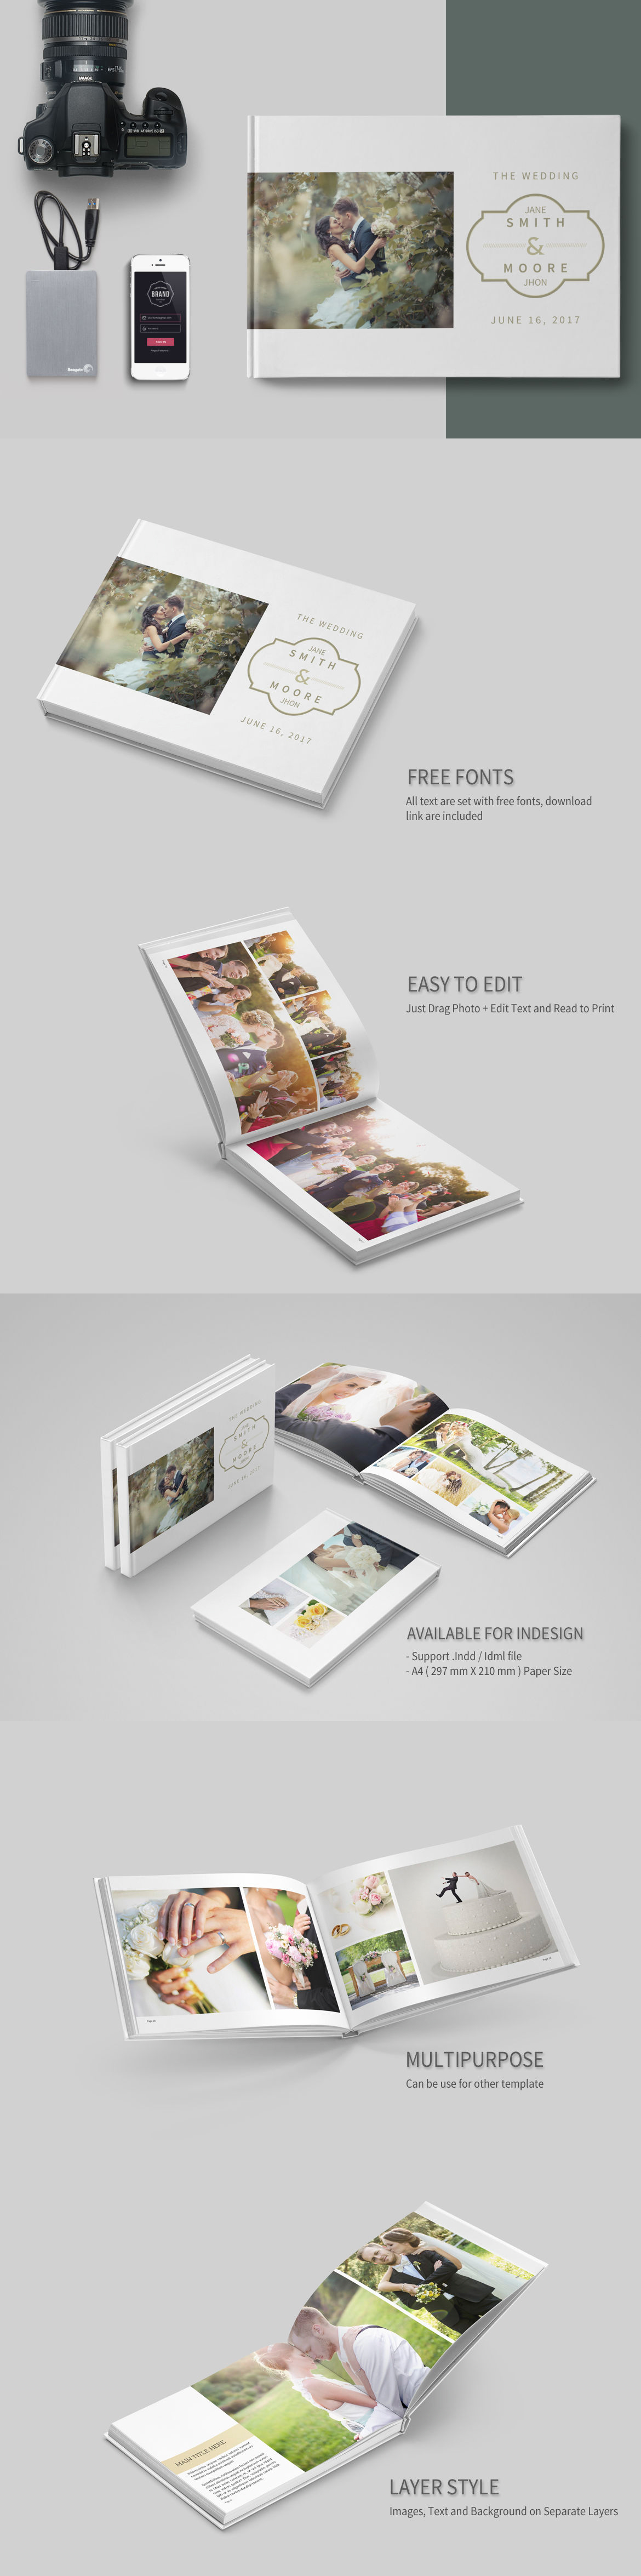 Simple Wedding Album Template InDesign INDD - 28 Pages | Photo Album ...